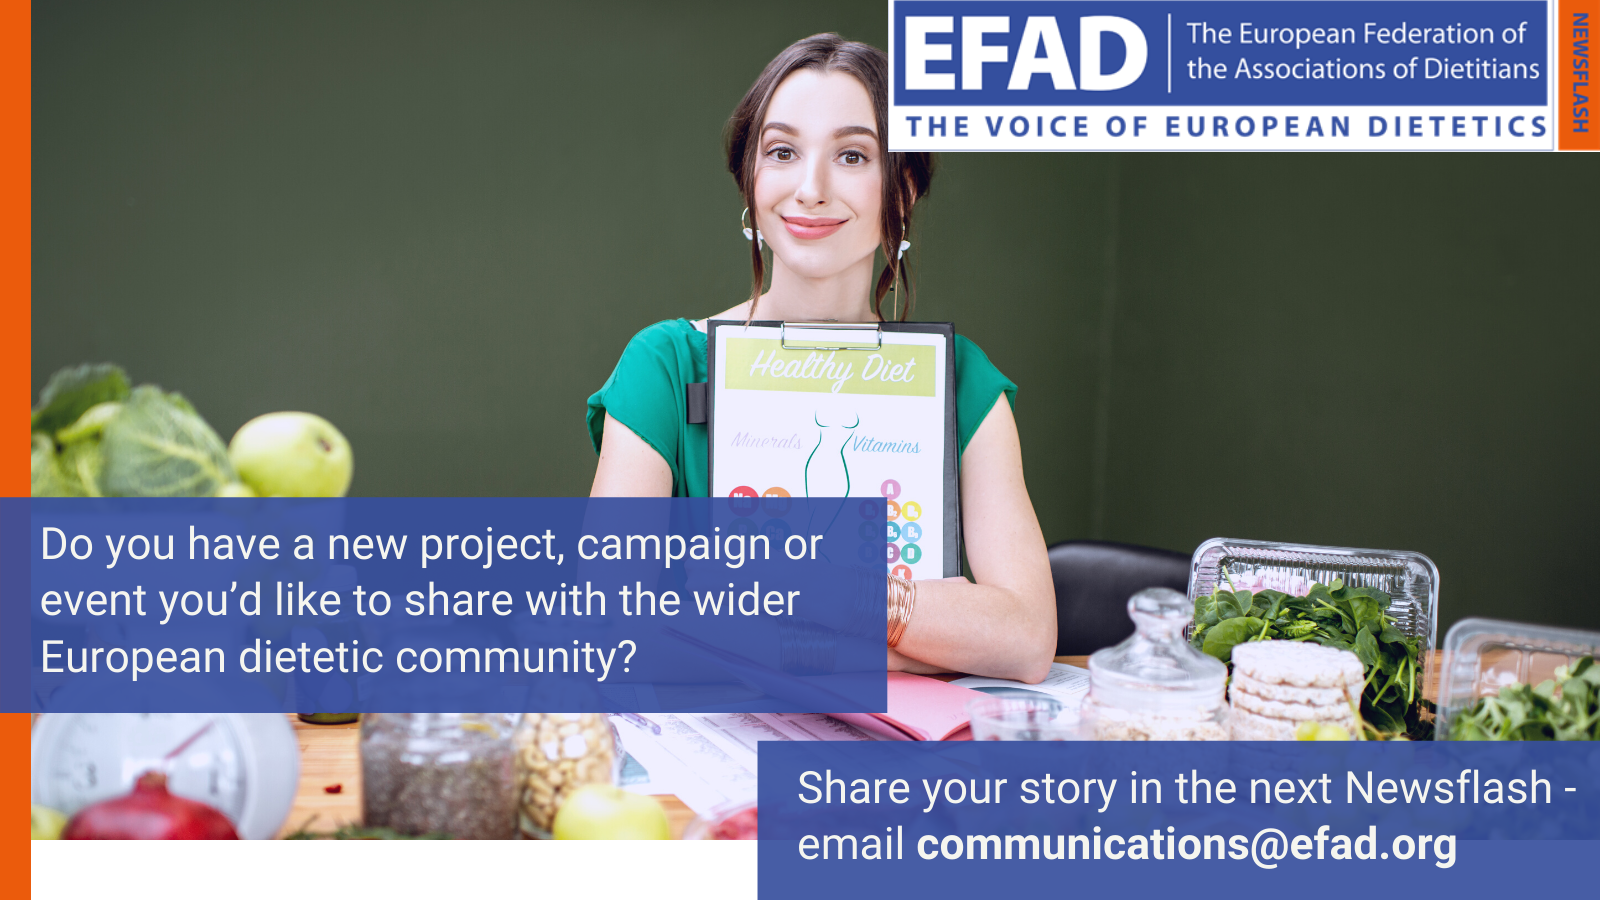 Photo of dietitian with info about how to submit your story for the Newsflash (email communications@efad.org)